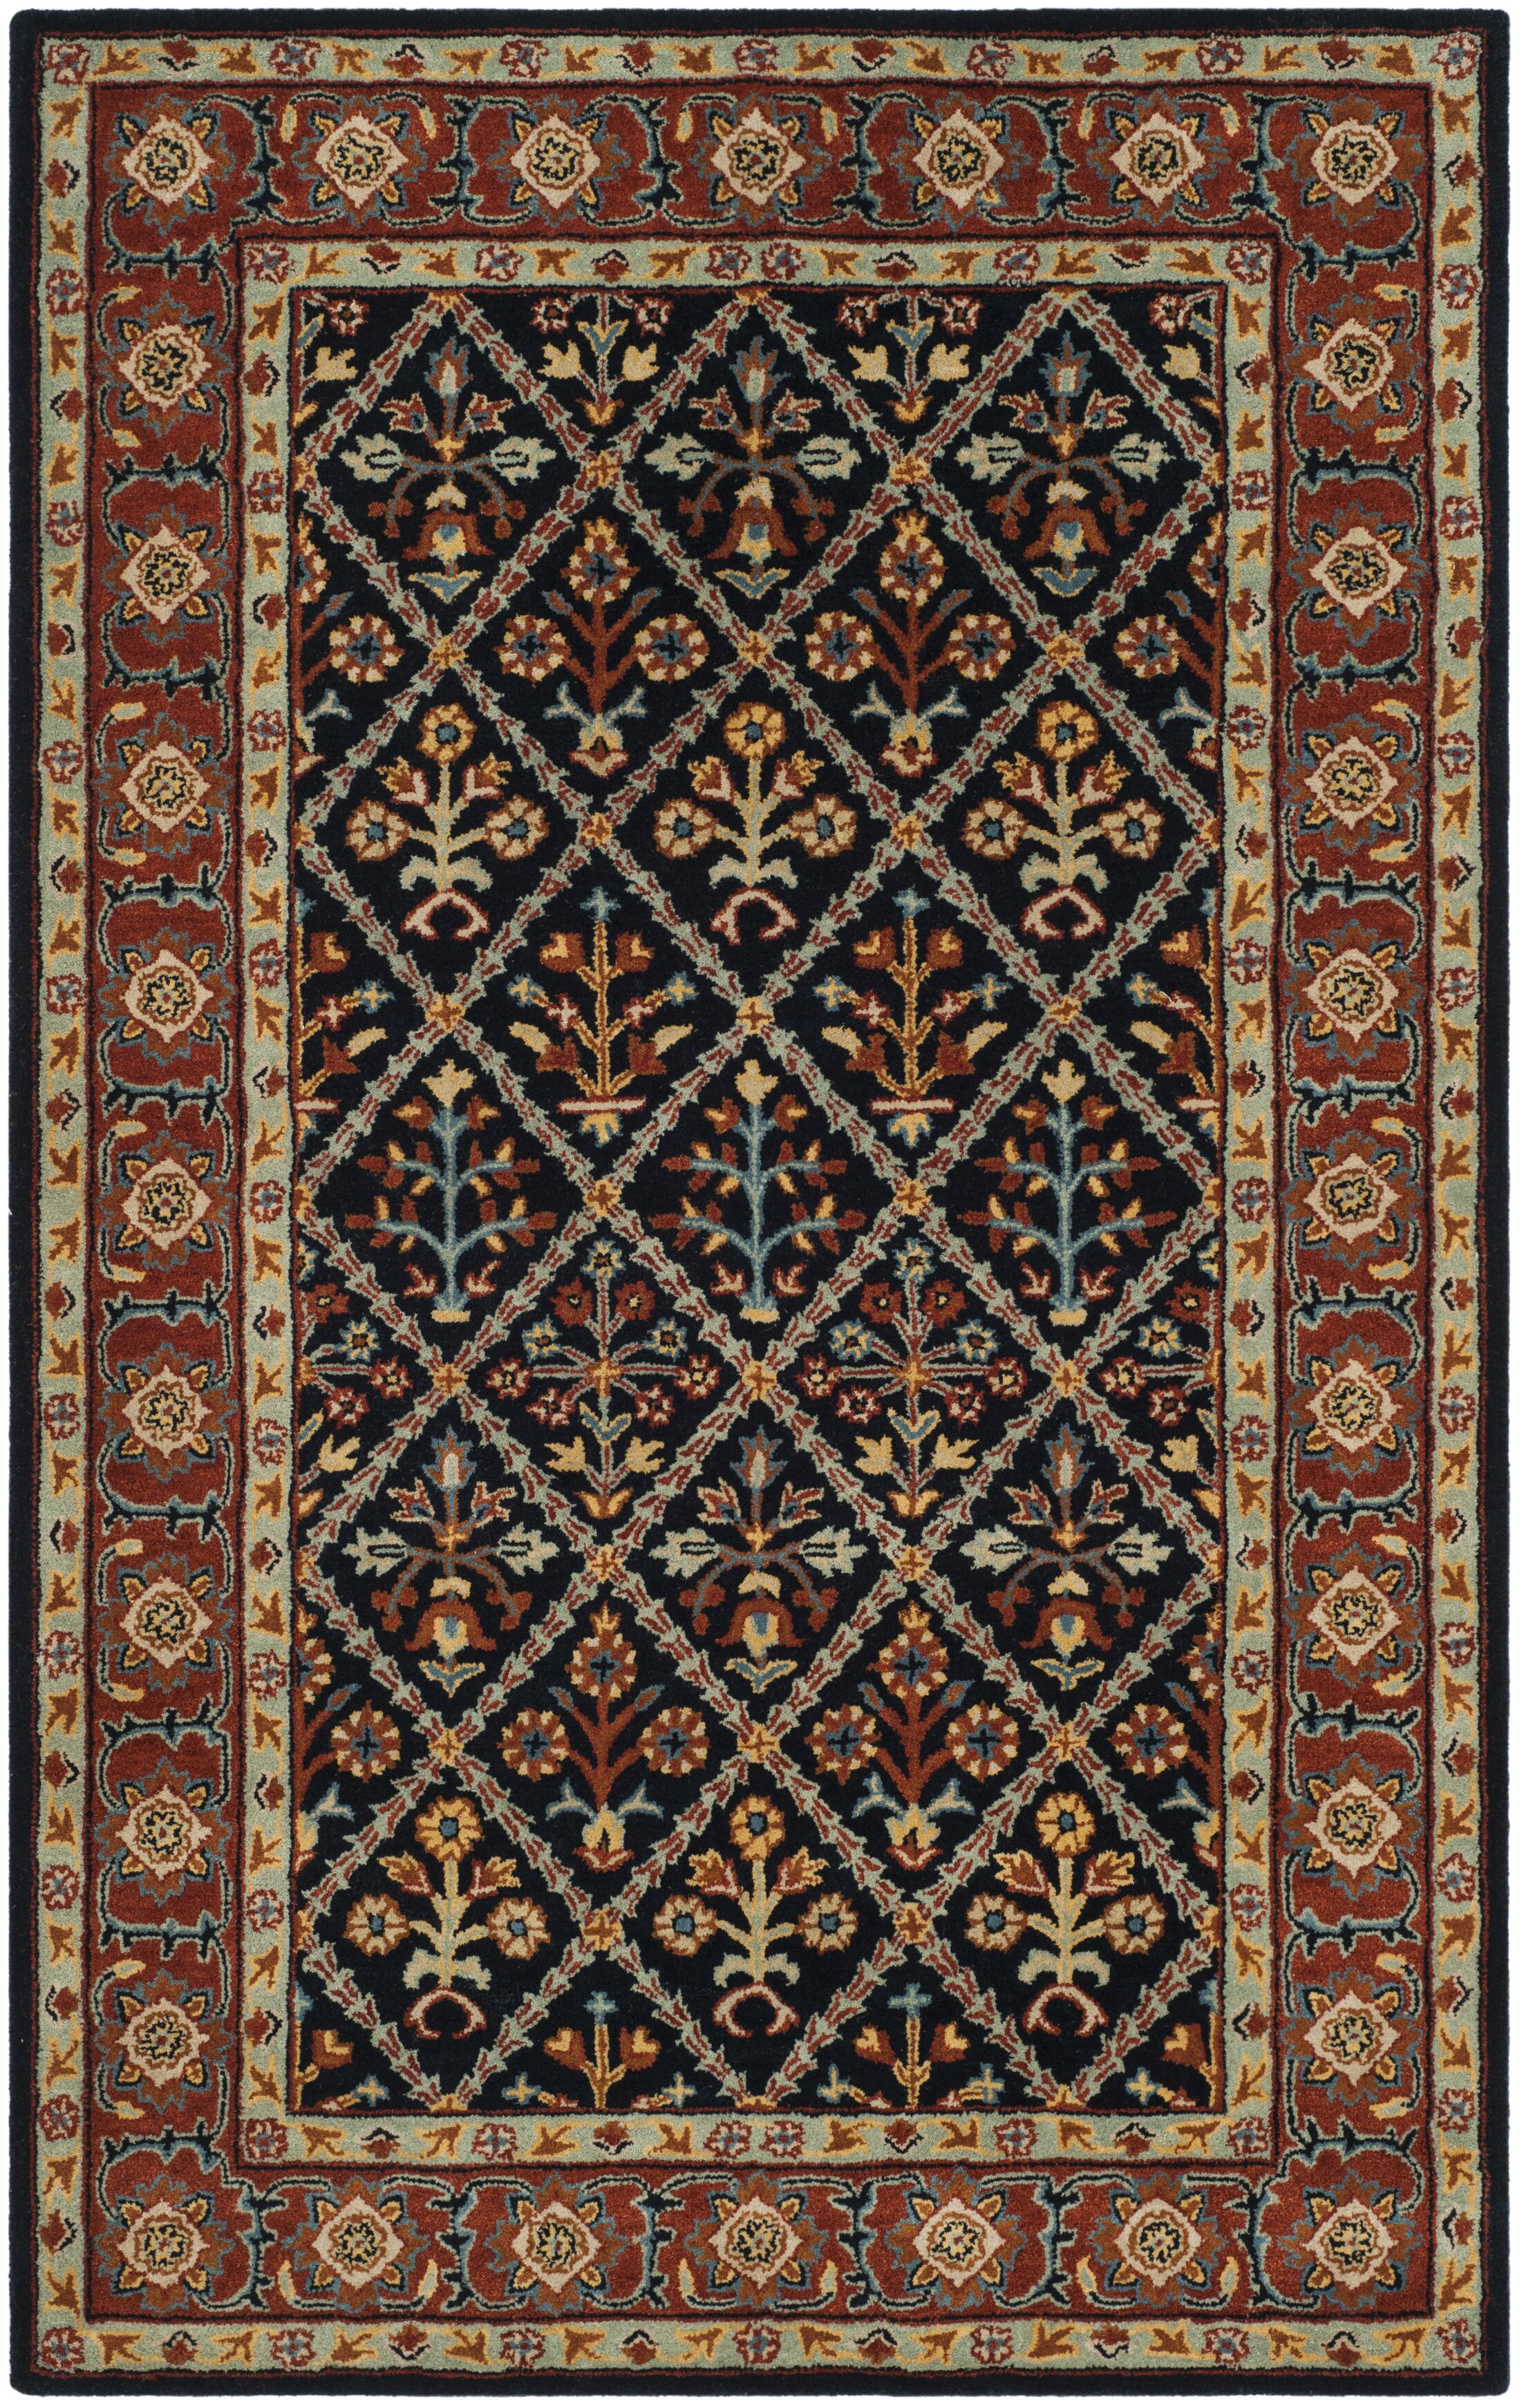 Moss Traditional Hand Tufted Wool Brown Area Rug Rug Size: Rectangle 6' x 9'